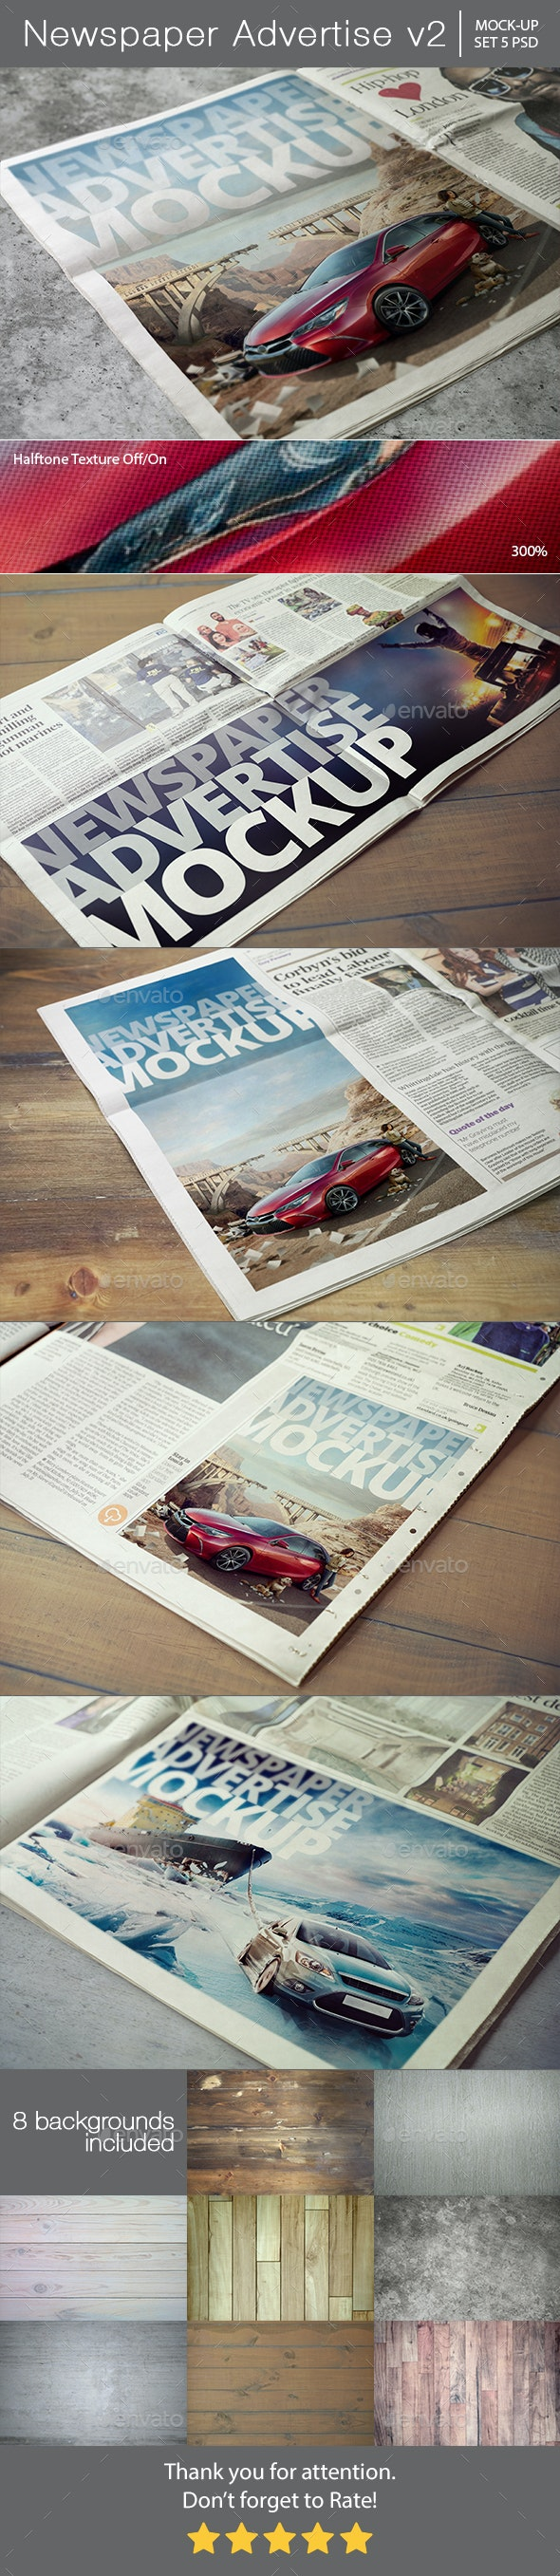 Newspaper Advertise Mockup v2 - Miscellaneous Print